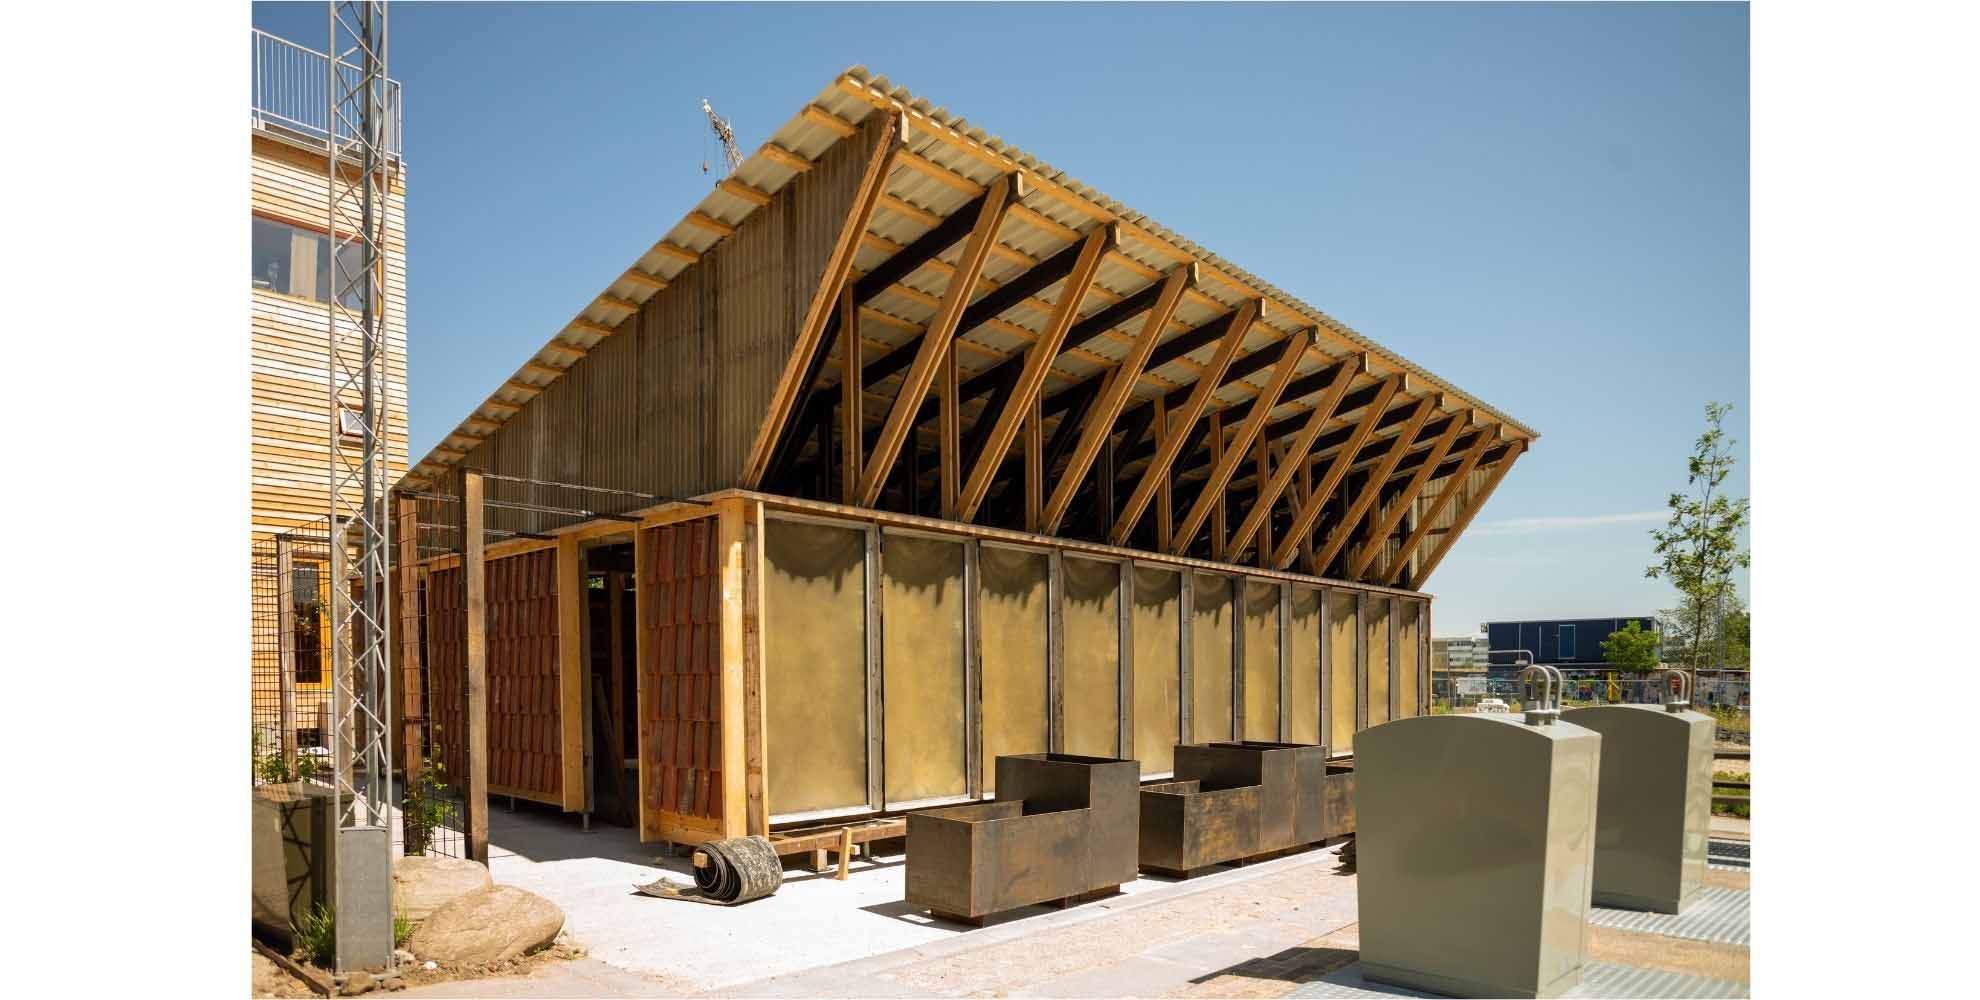 The reuse of materials is a creative way of producing new buildings.